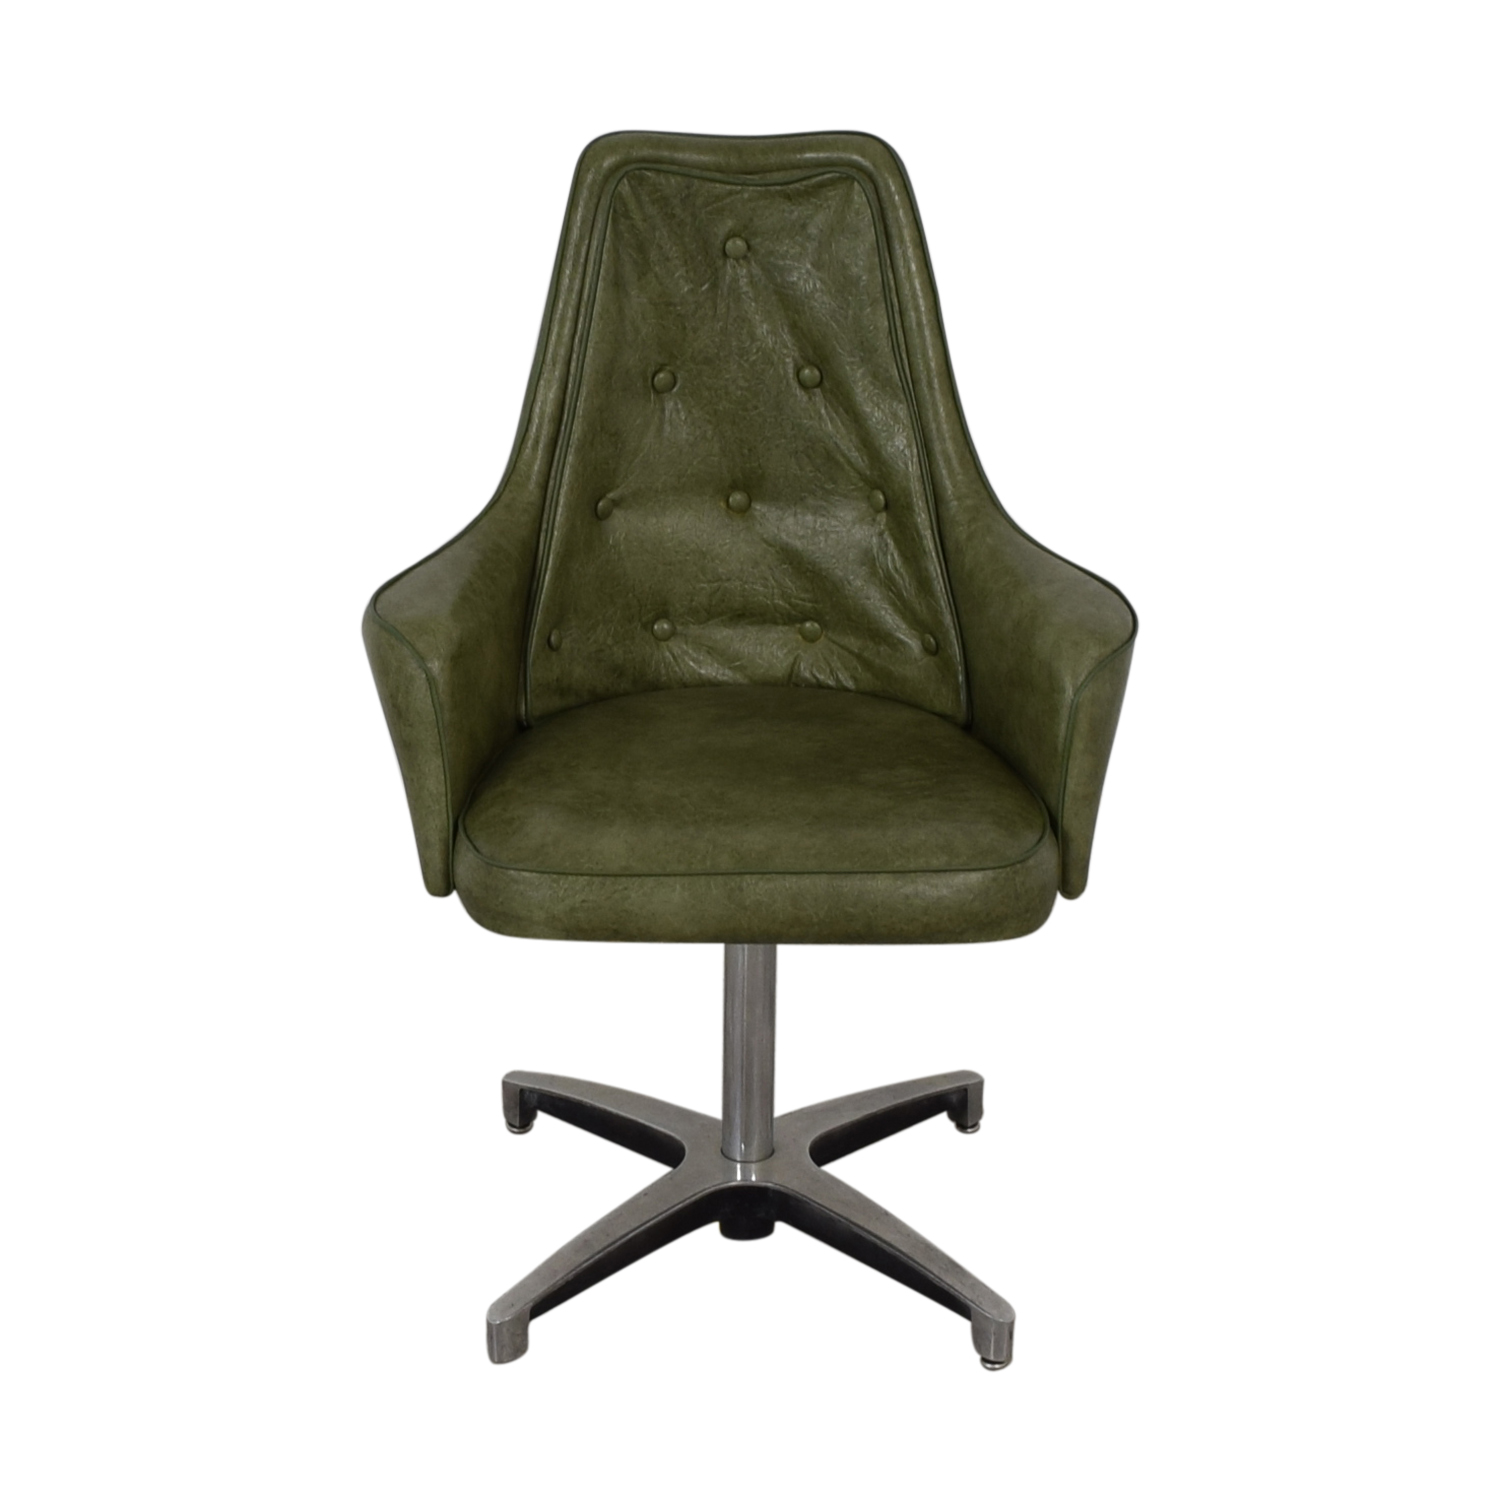 buy Spartan Chrome Furniture Green Leather Chair Spartan Chrome Furniture Chairs